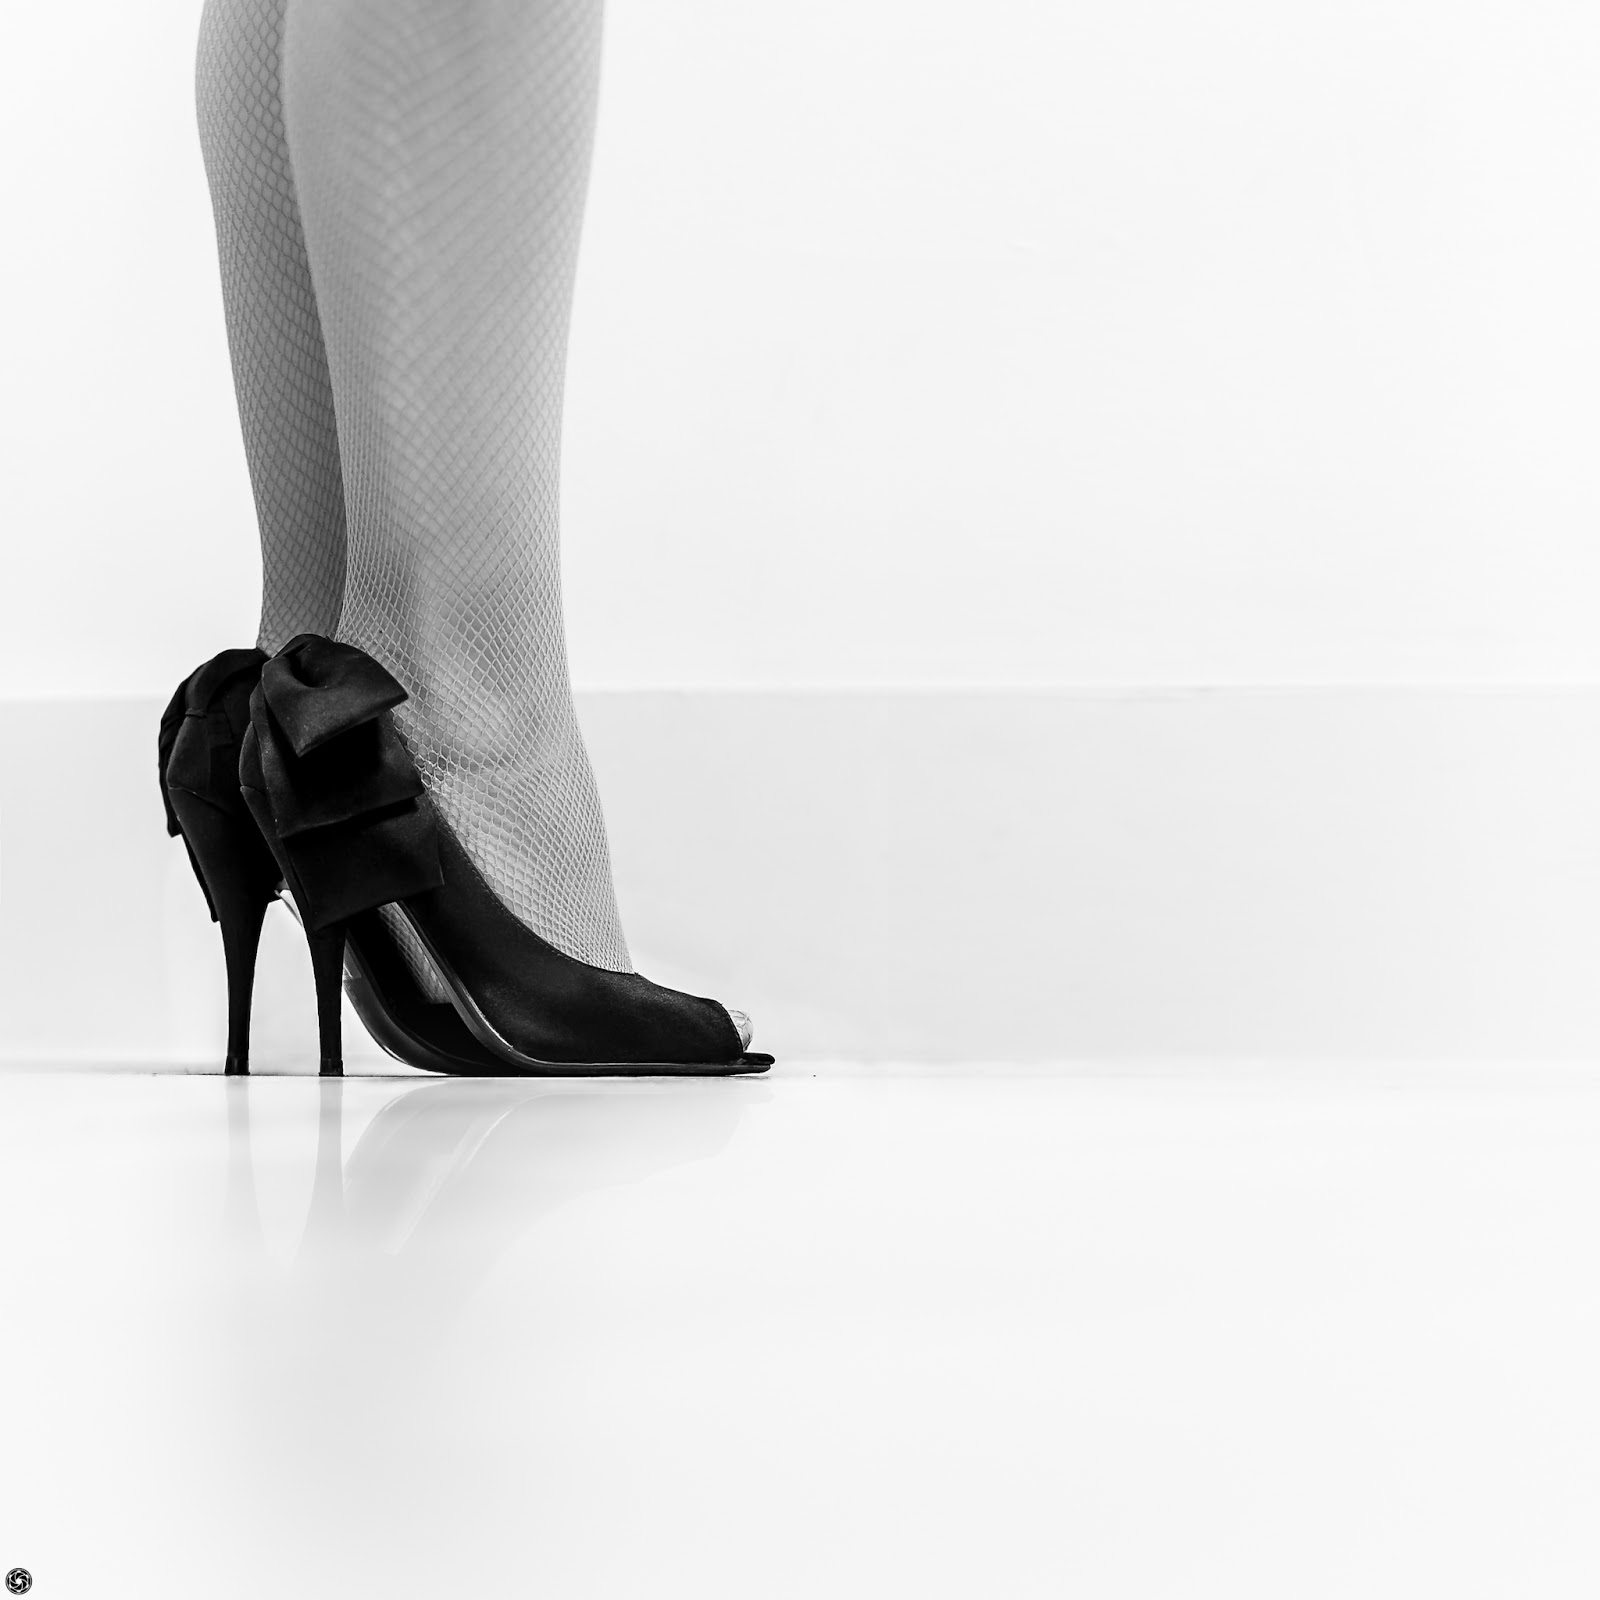 Tacones cercanos :: Canon EOS 5D MkIII | ISO100 | Canon 85mm | f/2.5 | 0.3s